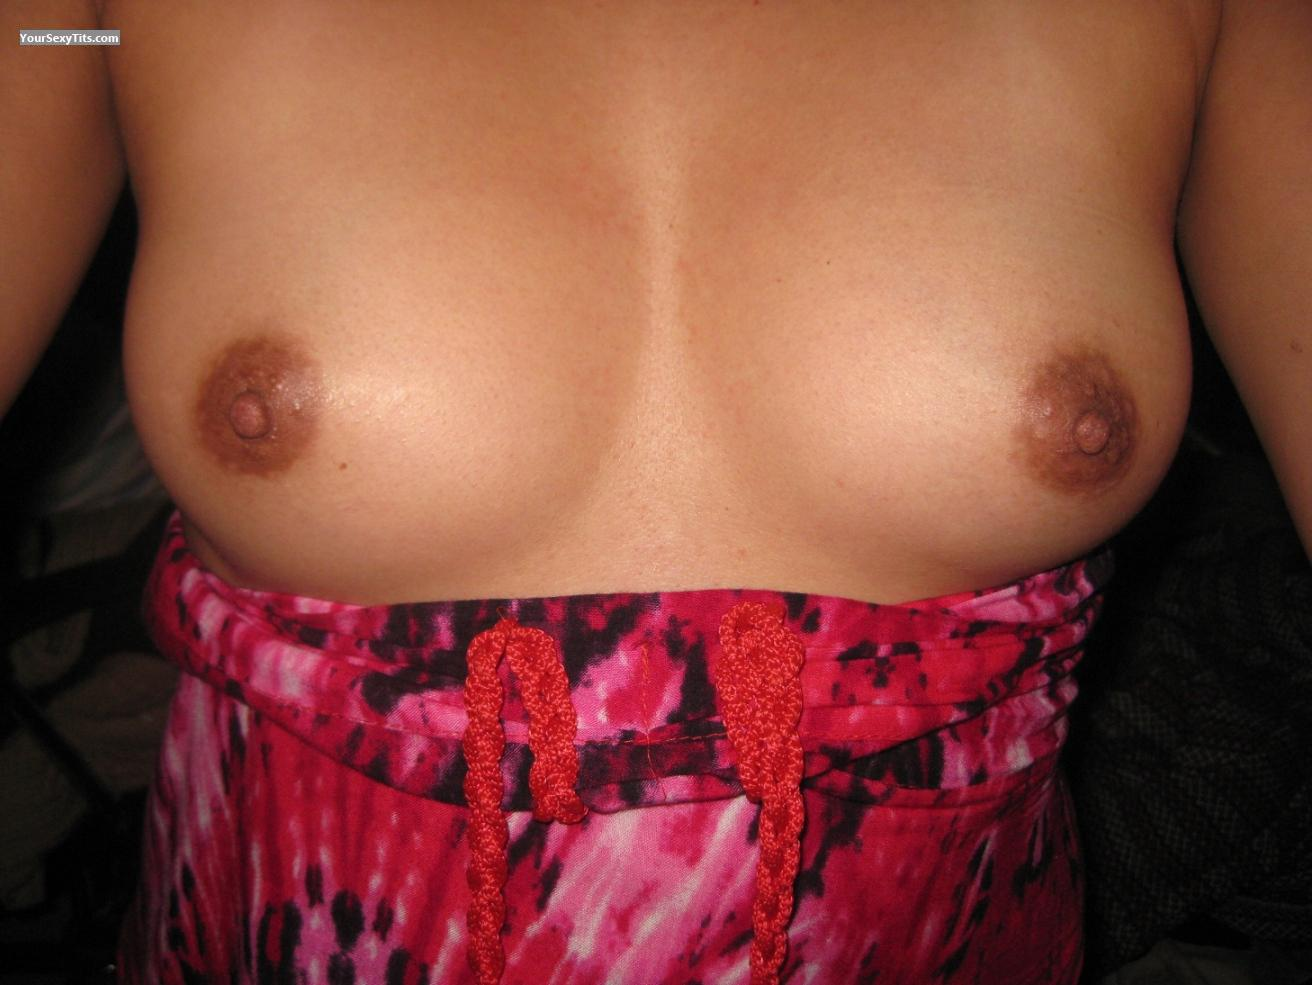 Tit Flash: Girlfriend's Small Tits (Selfie) - Littlebutt from Philippines